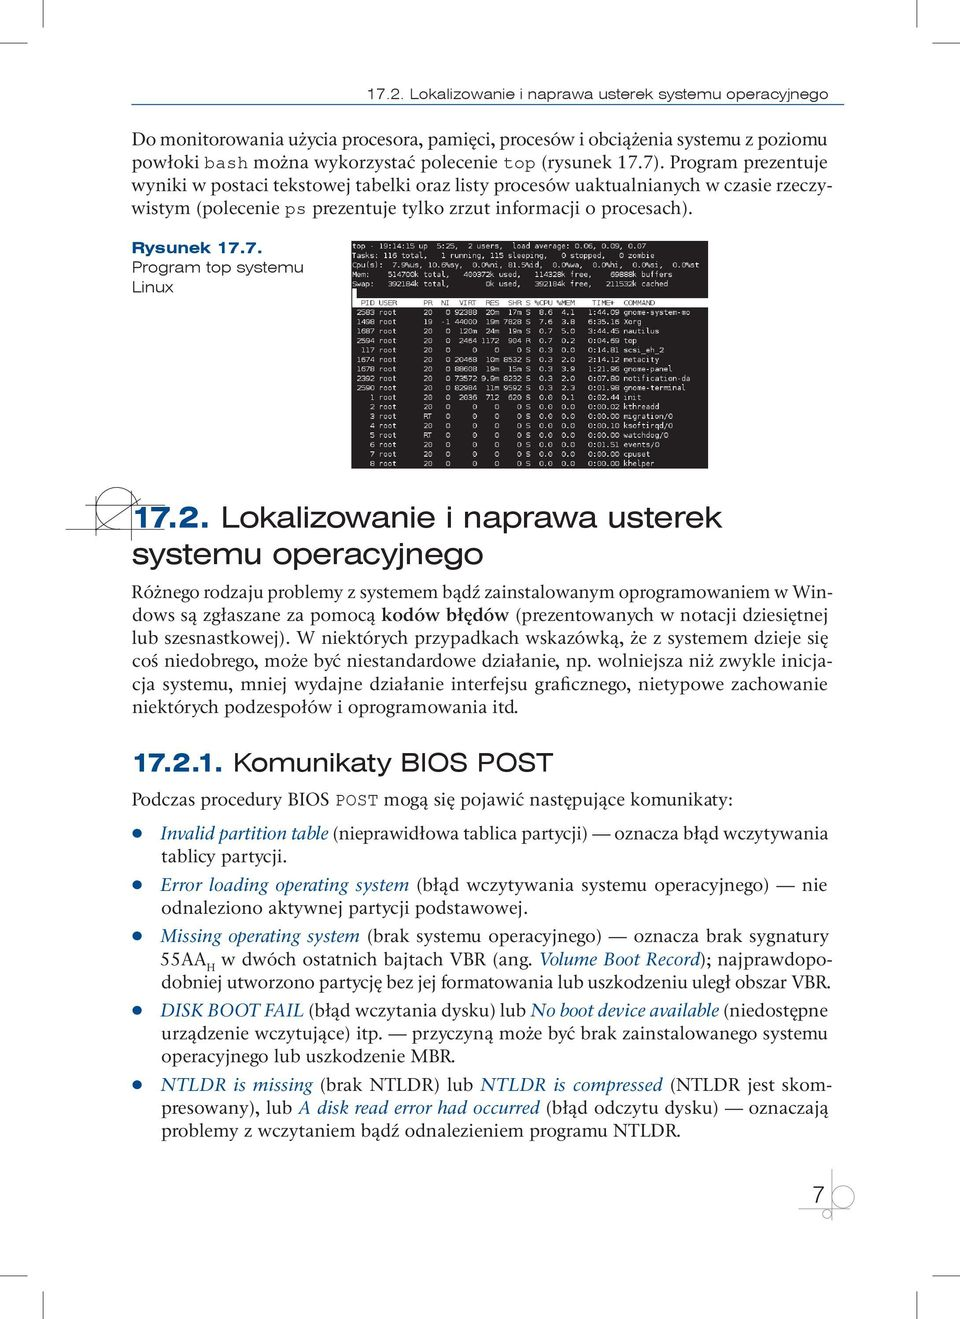 7. Program top systemu Linux 17.2.